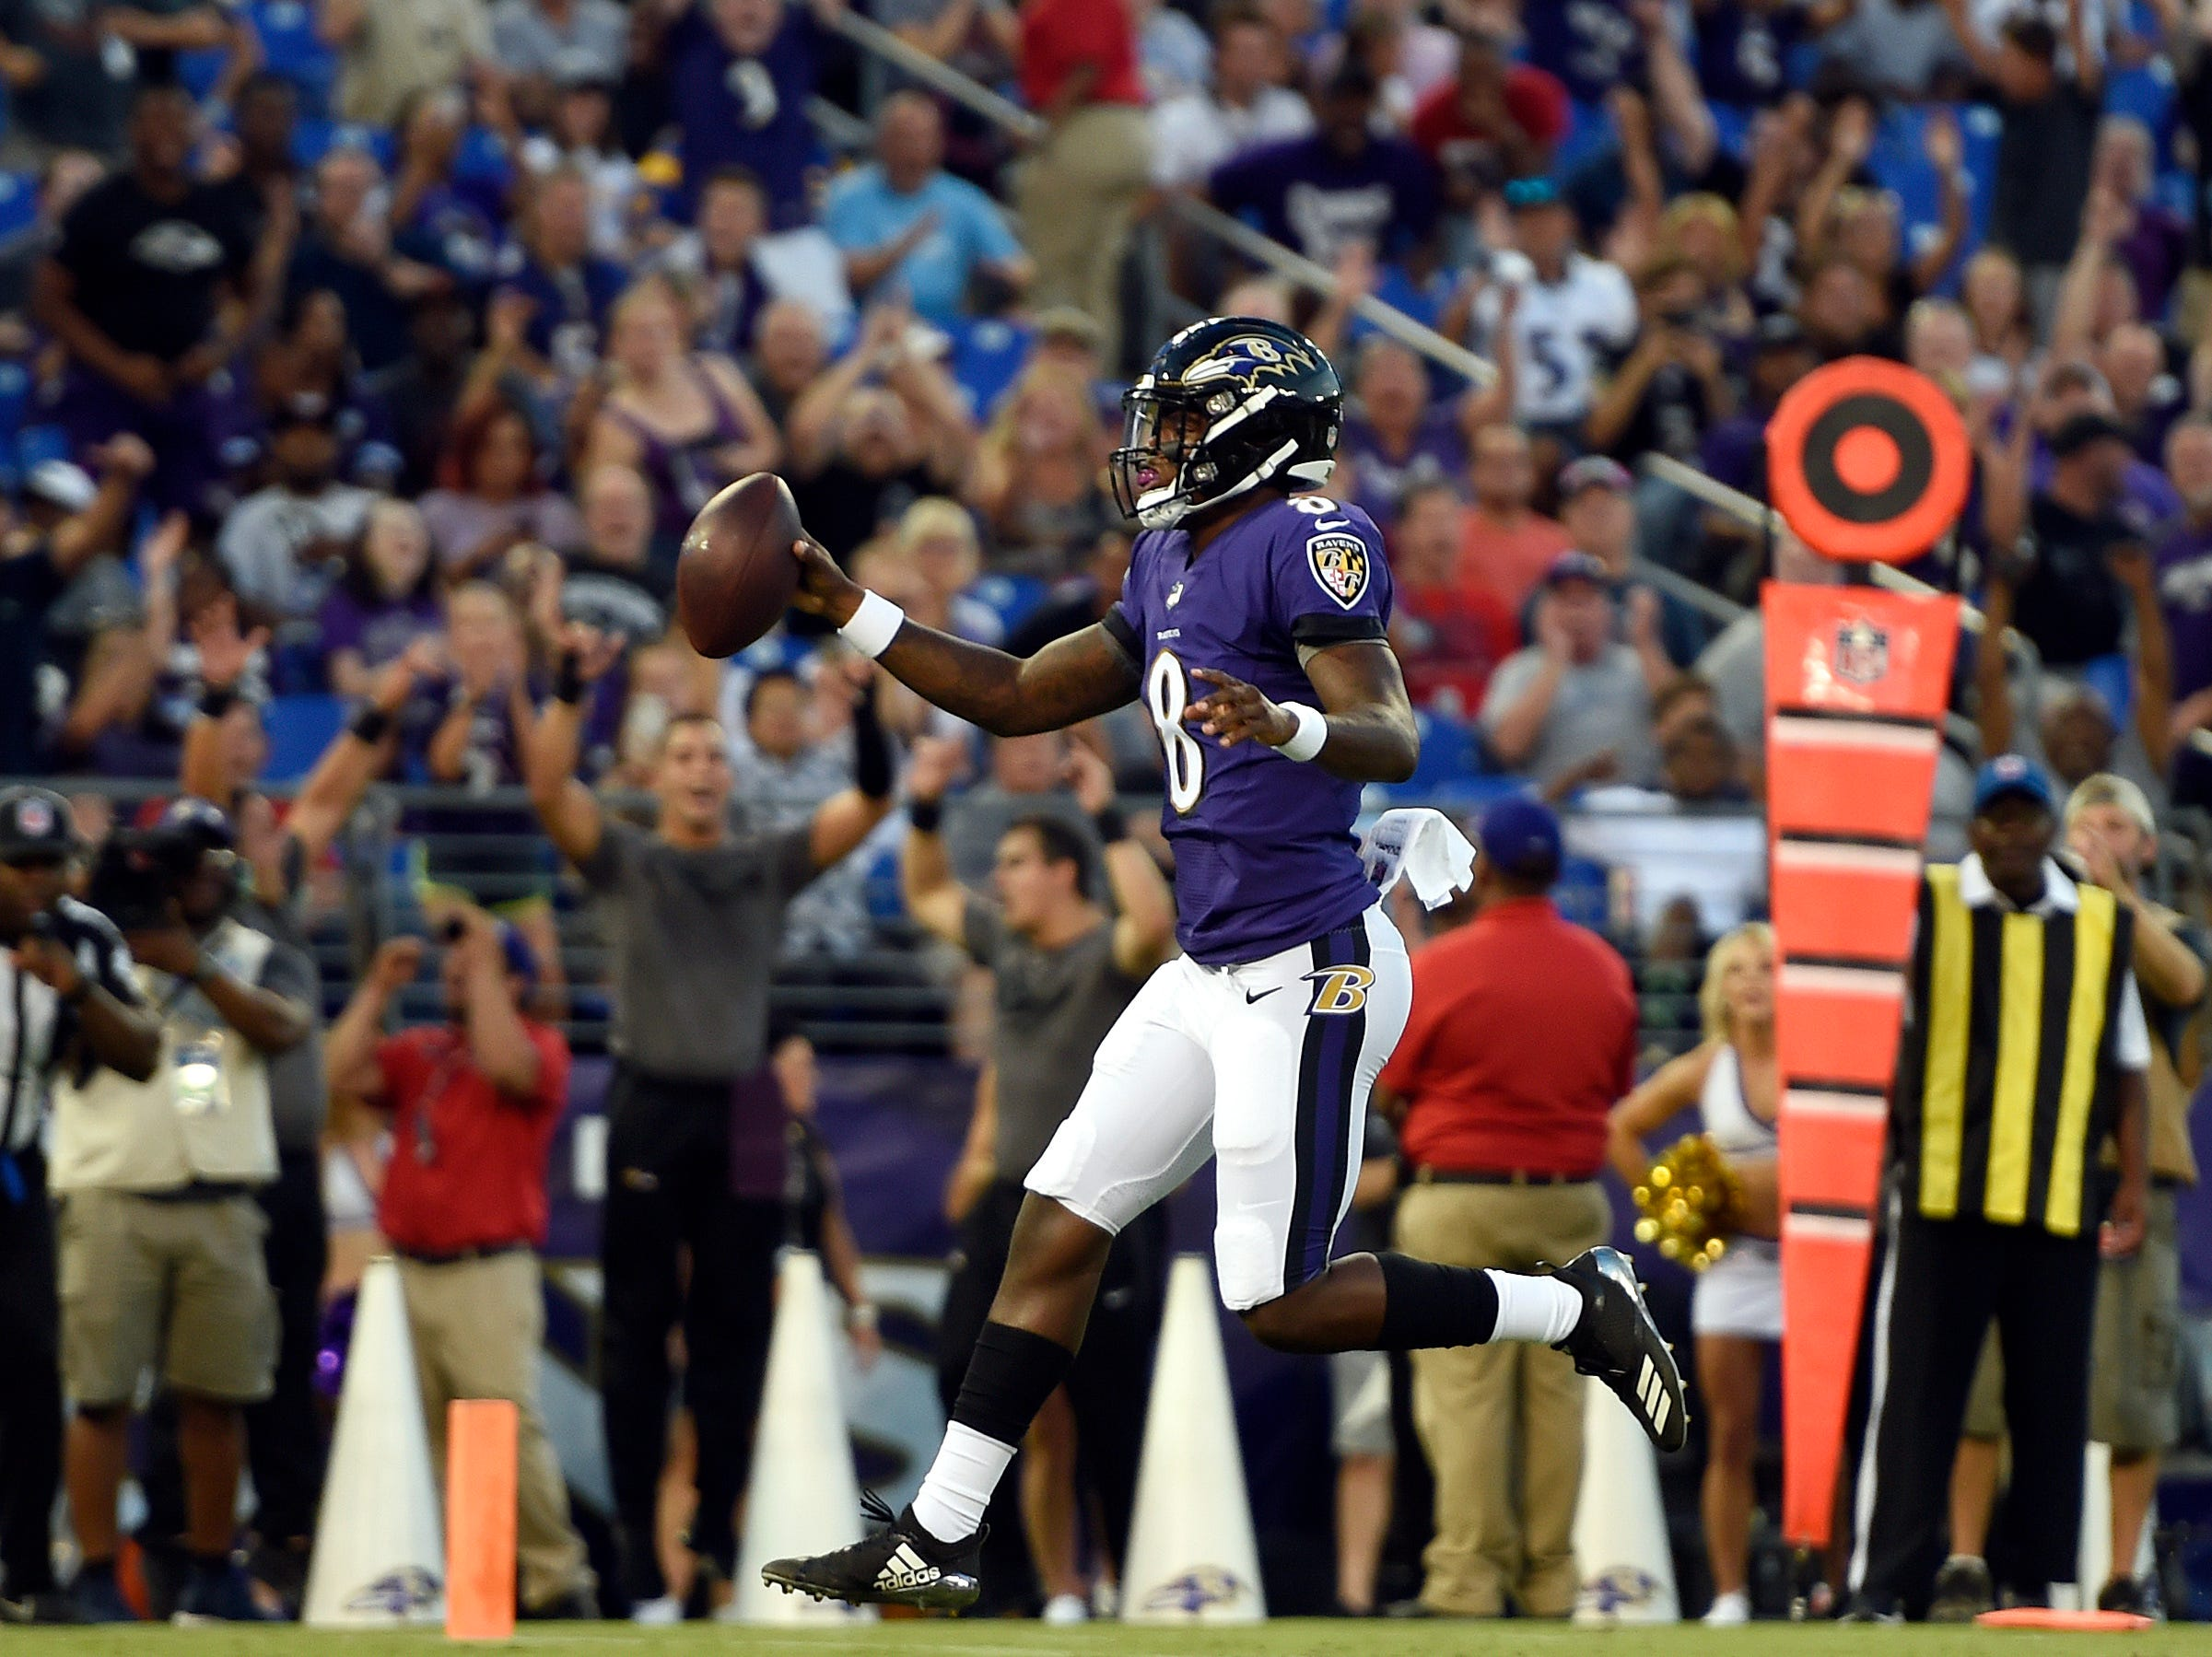 Baltimore Ravens quarterback Lamar Jackson scores a touchdown in the first half of a preseason NFL football game against the Los Angeles Rams, Thursday, Aug. 9, 2018, in Baltimore. (AP Photo/Gail Burton)